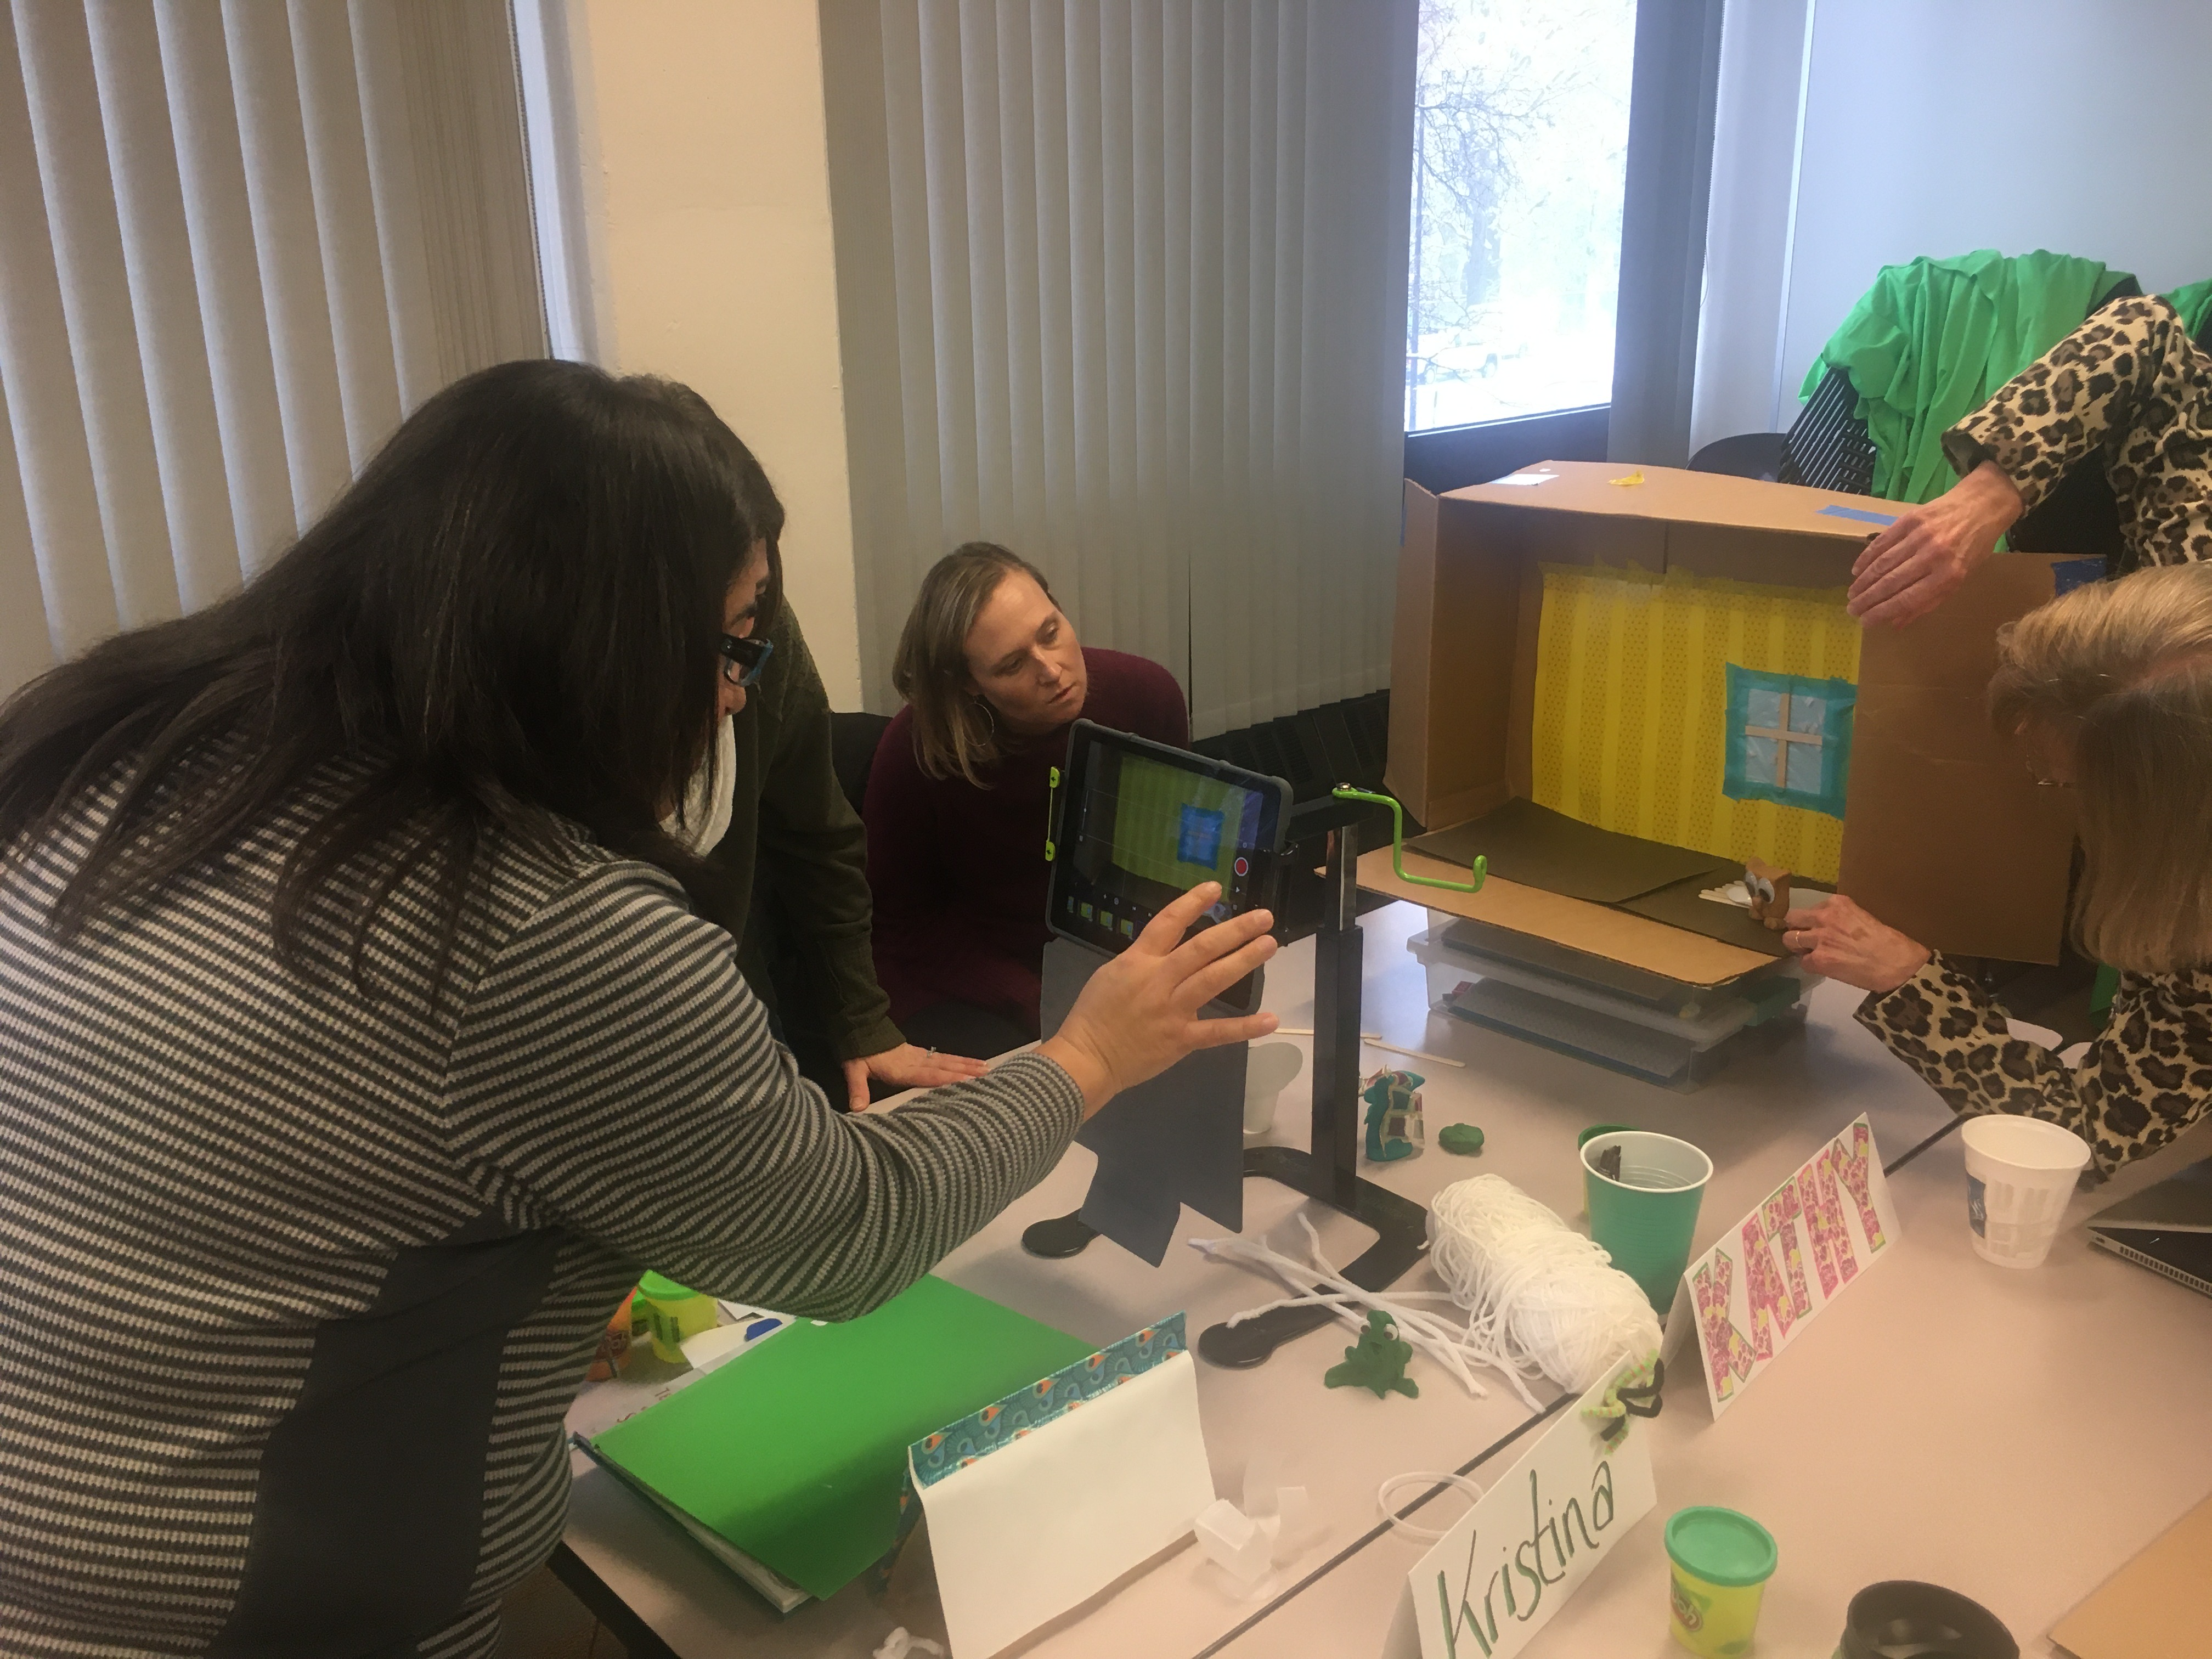 Four educators participate in a professional development workshop. They are learning how to document projects by taking photos of a diorama.